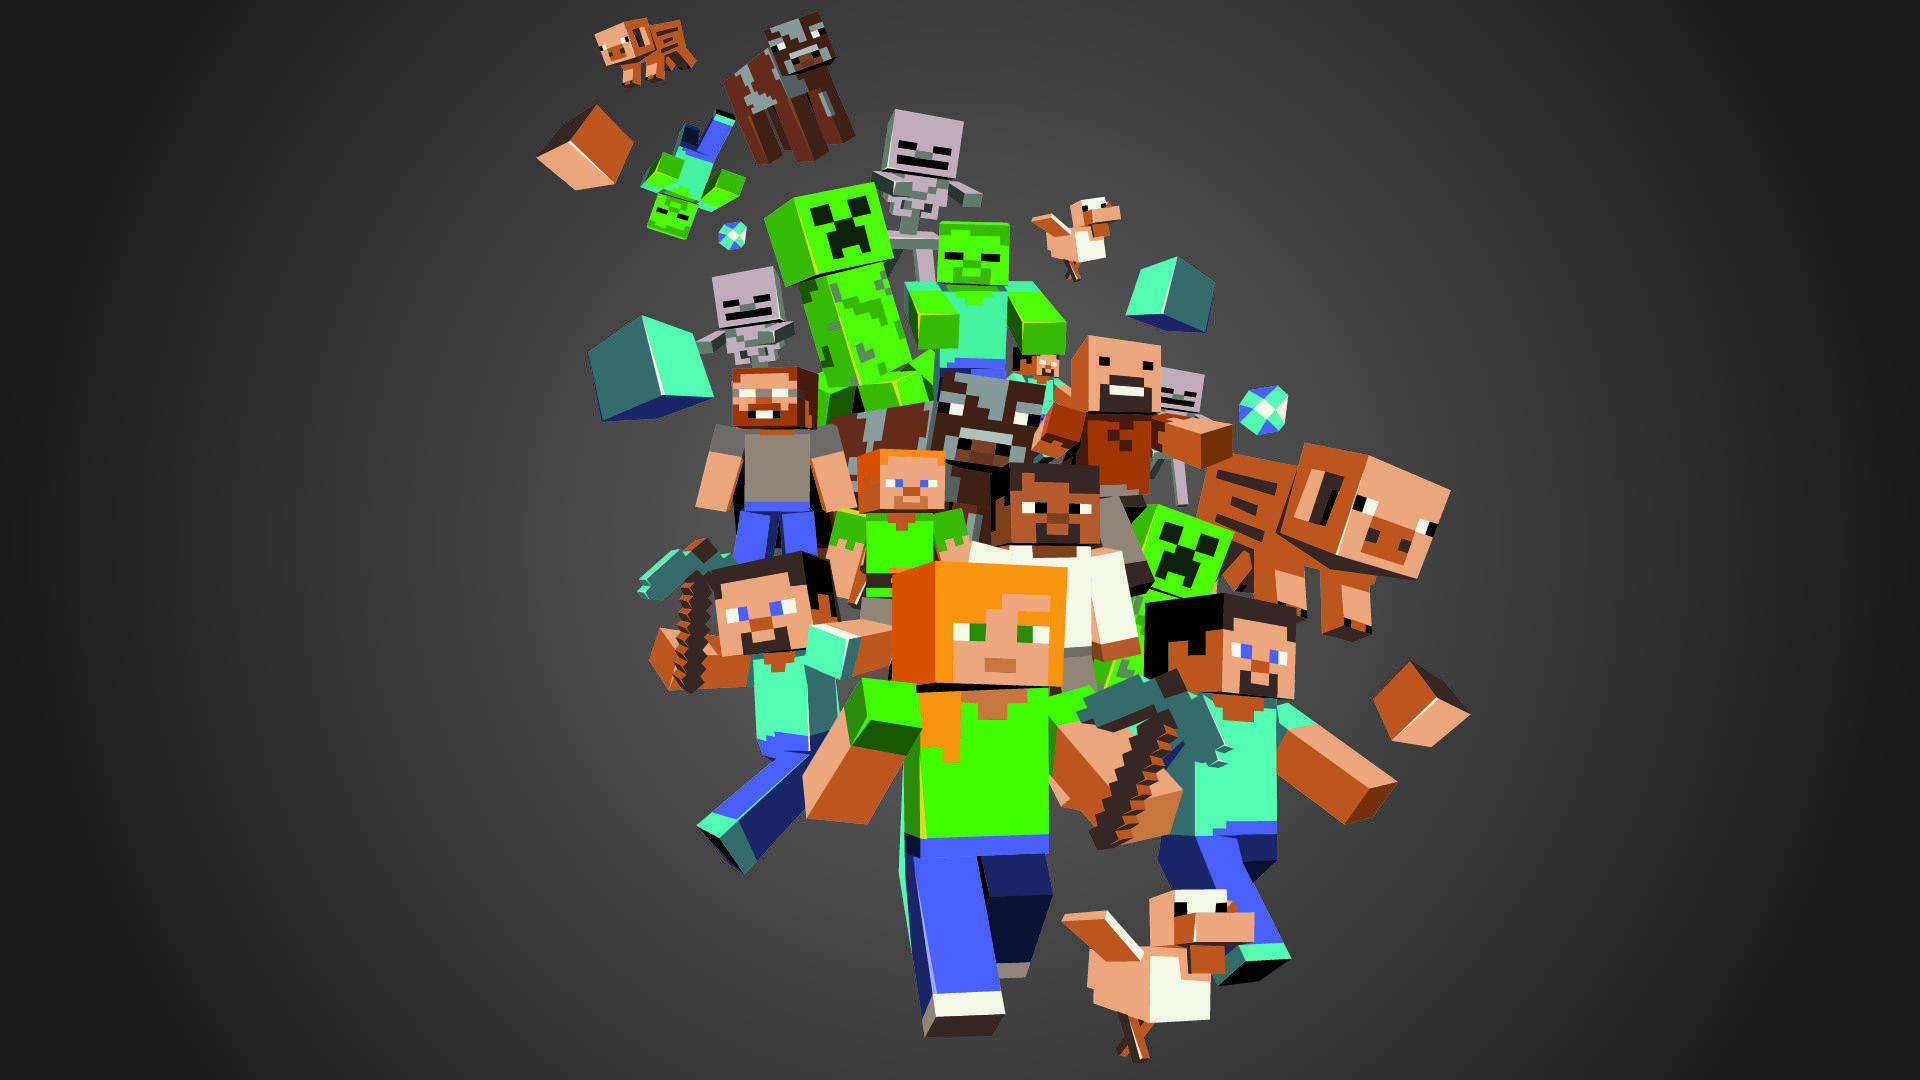 1920x1080 Minecraft Wallpapers Cube Halloween Hd Background Free Amazing Cool Smart Phone 4k High Definition 1920A 1080 Wallpaper HD